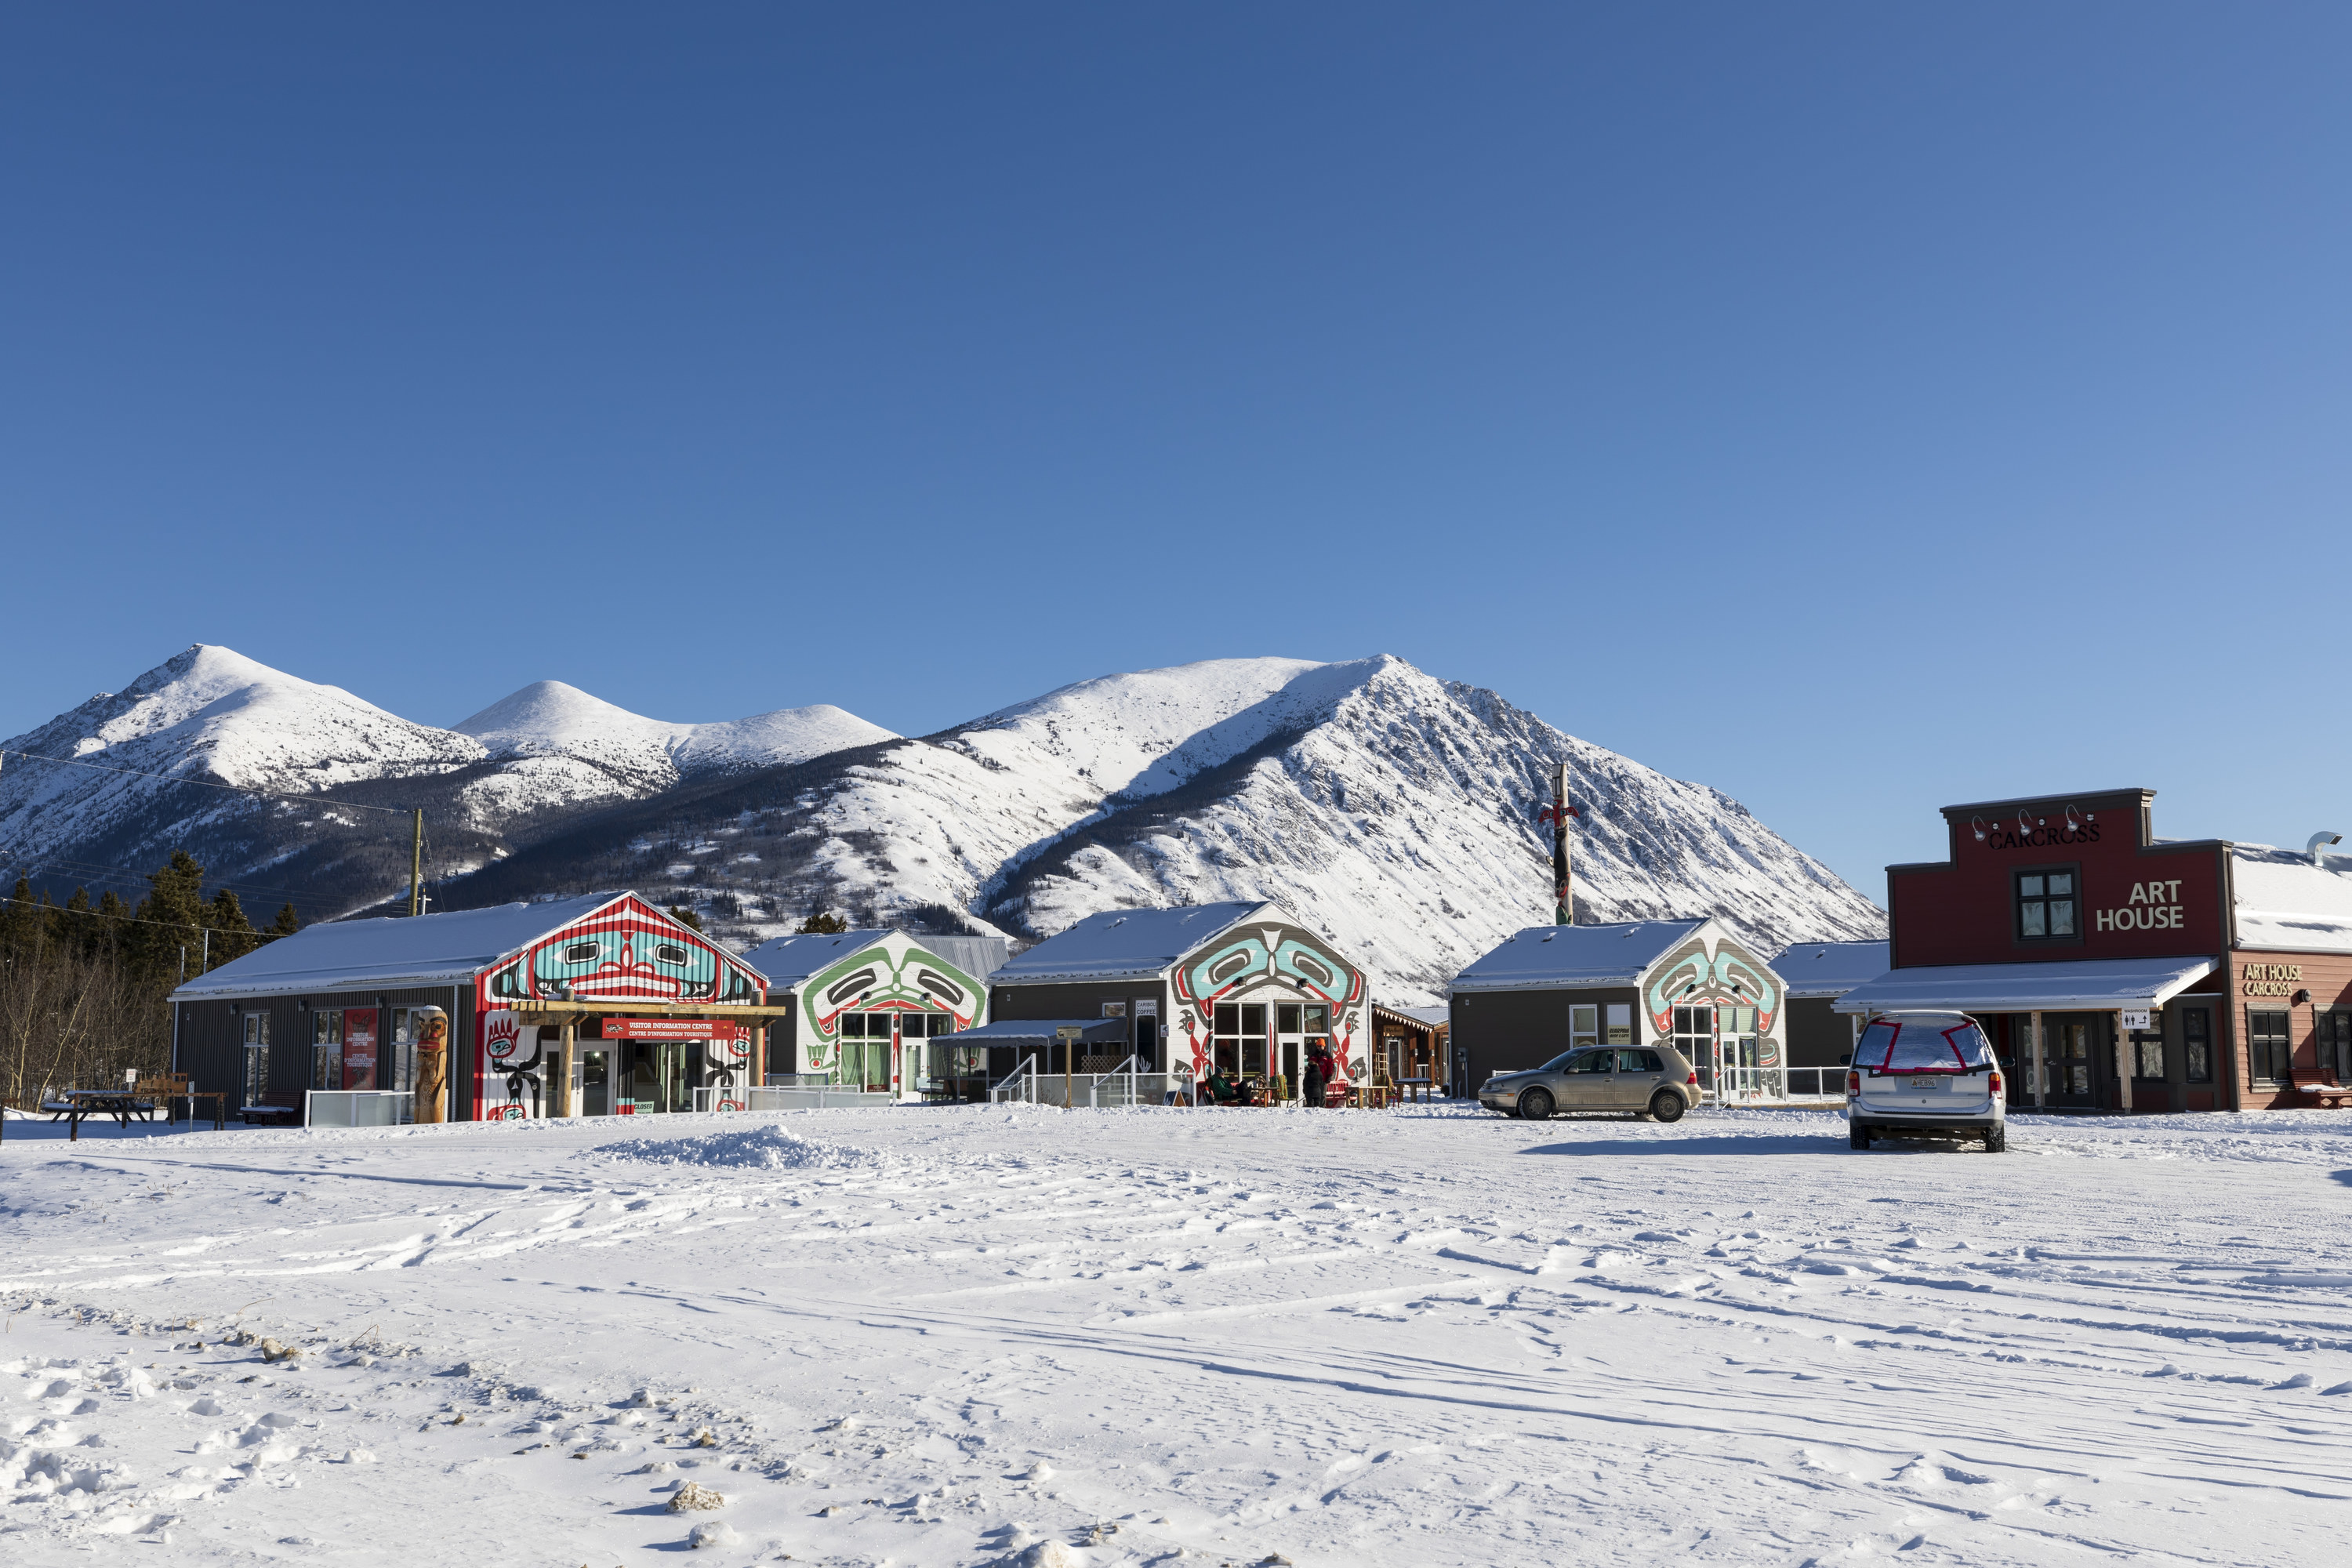 Carcross Commons, a retail village showcasing First Nations culture, art and crafts, Yukon, Canada